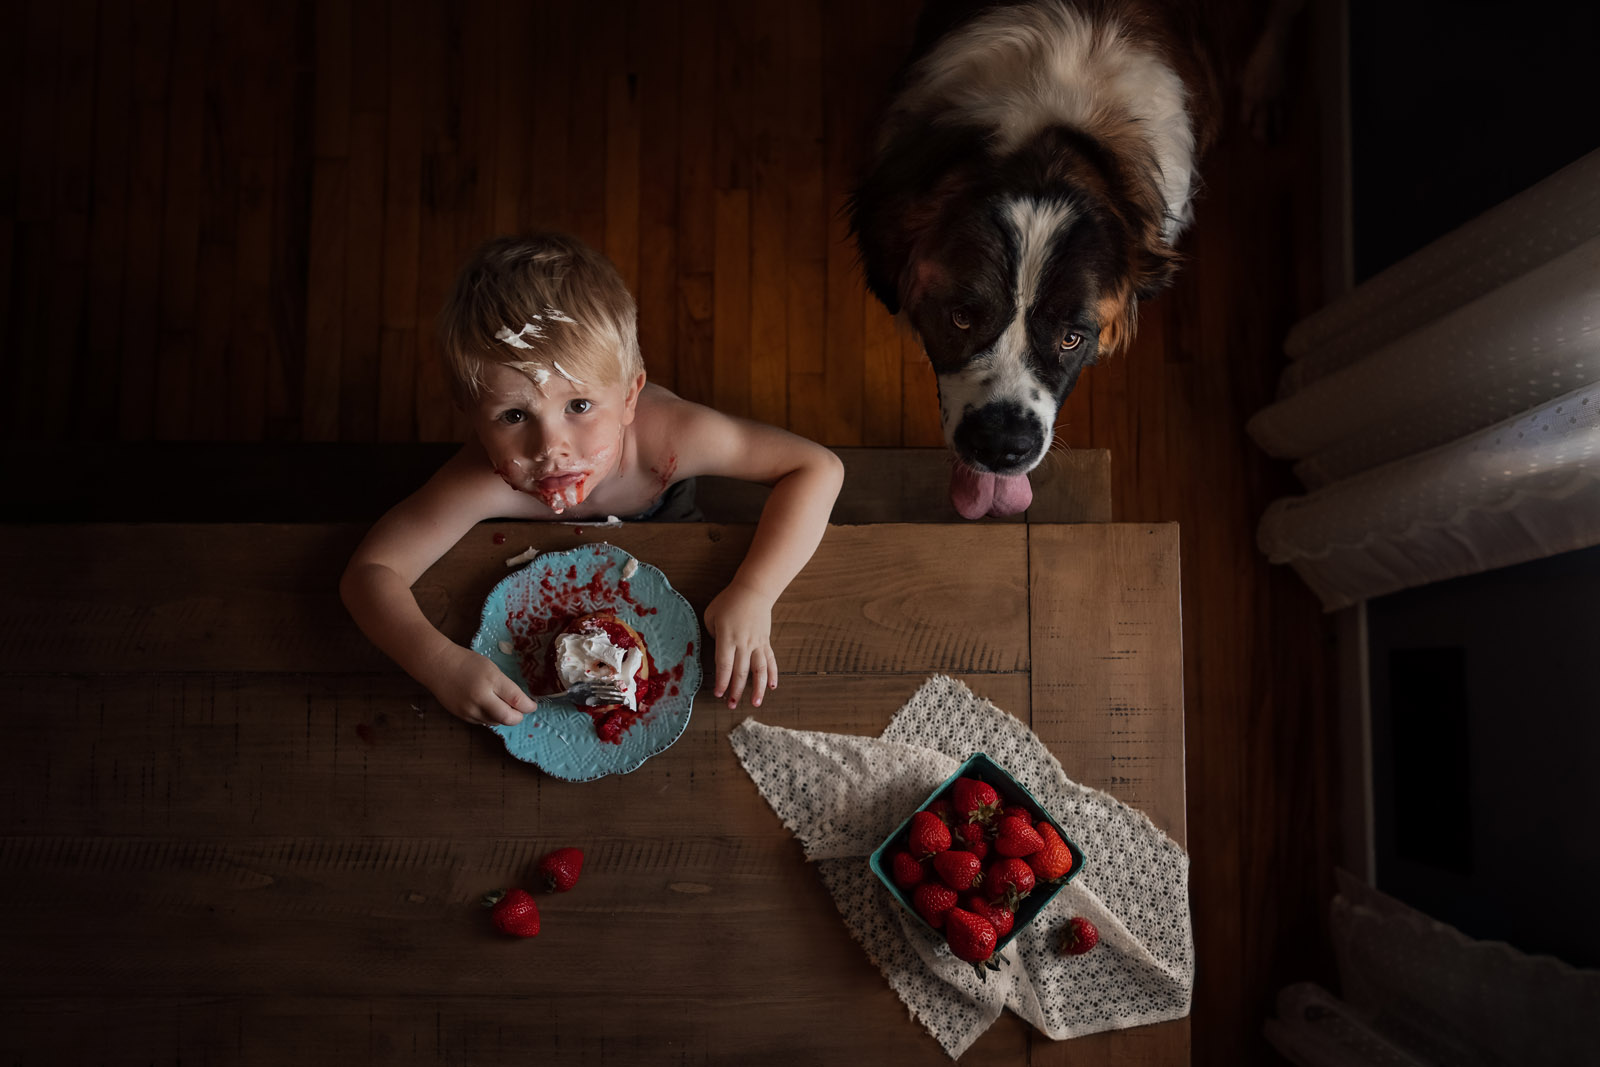 photographing pets small boy eating strawberry shortcake messy with large dog st bernard by meg loeks